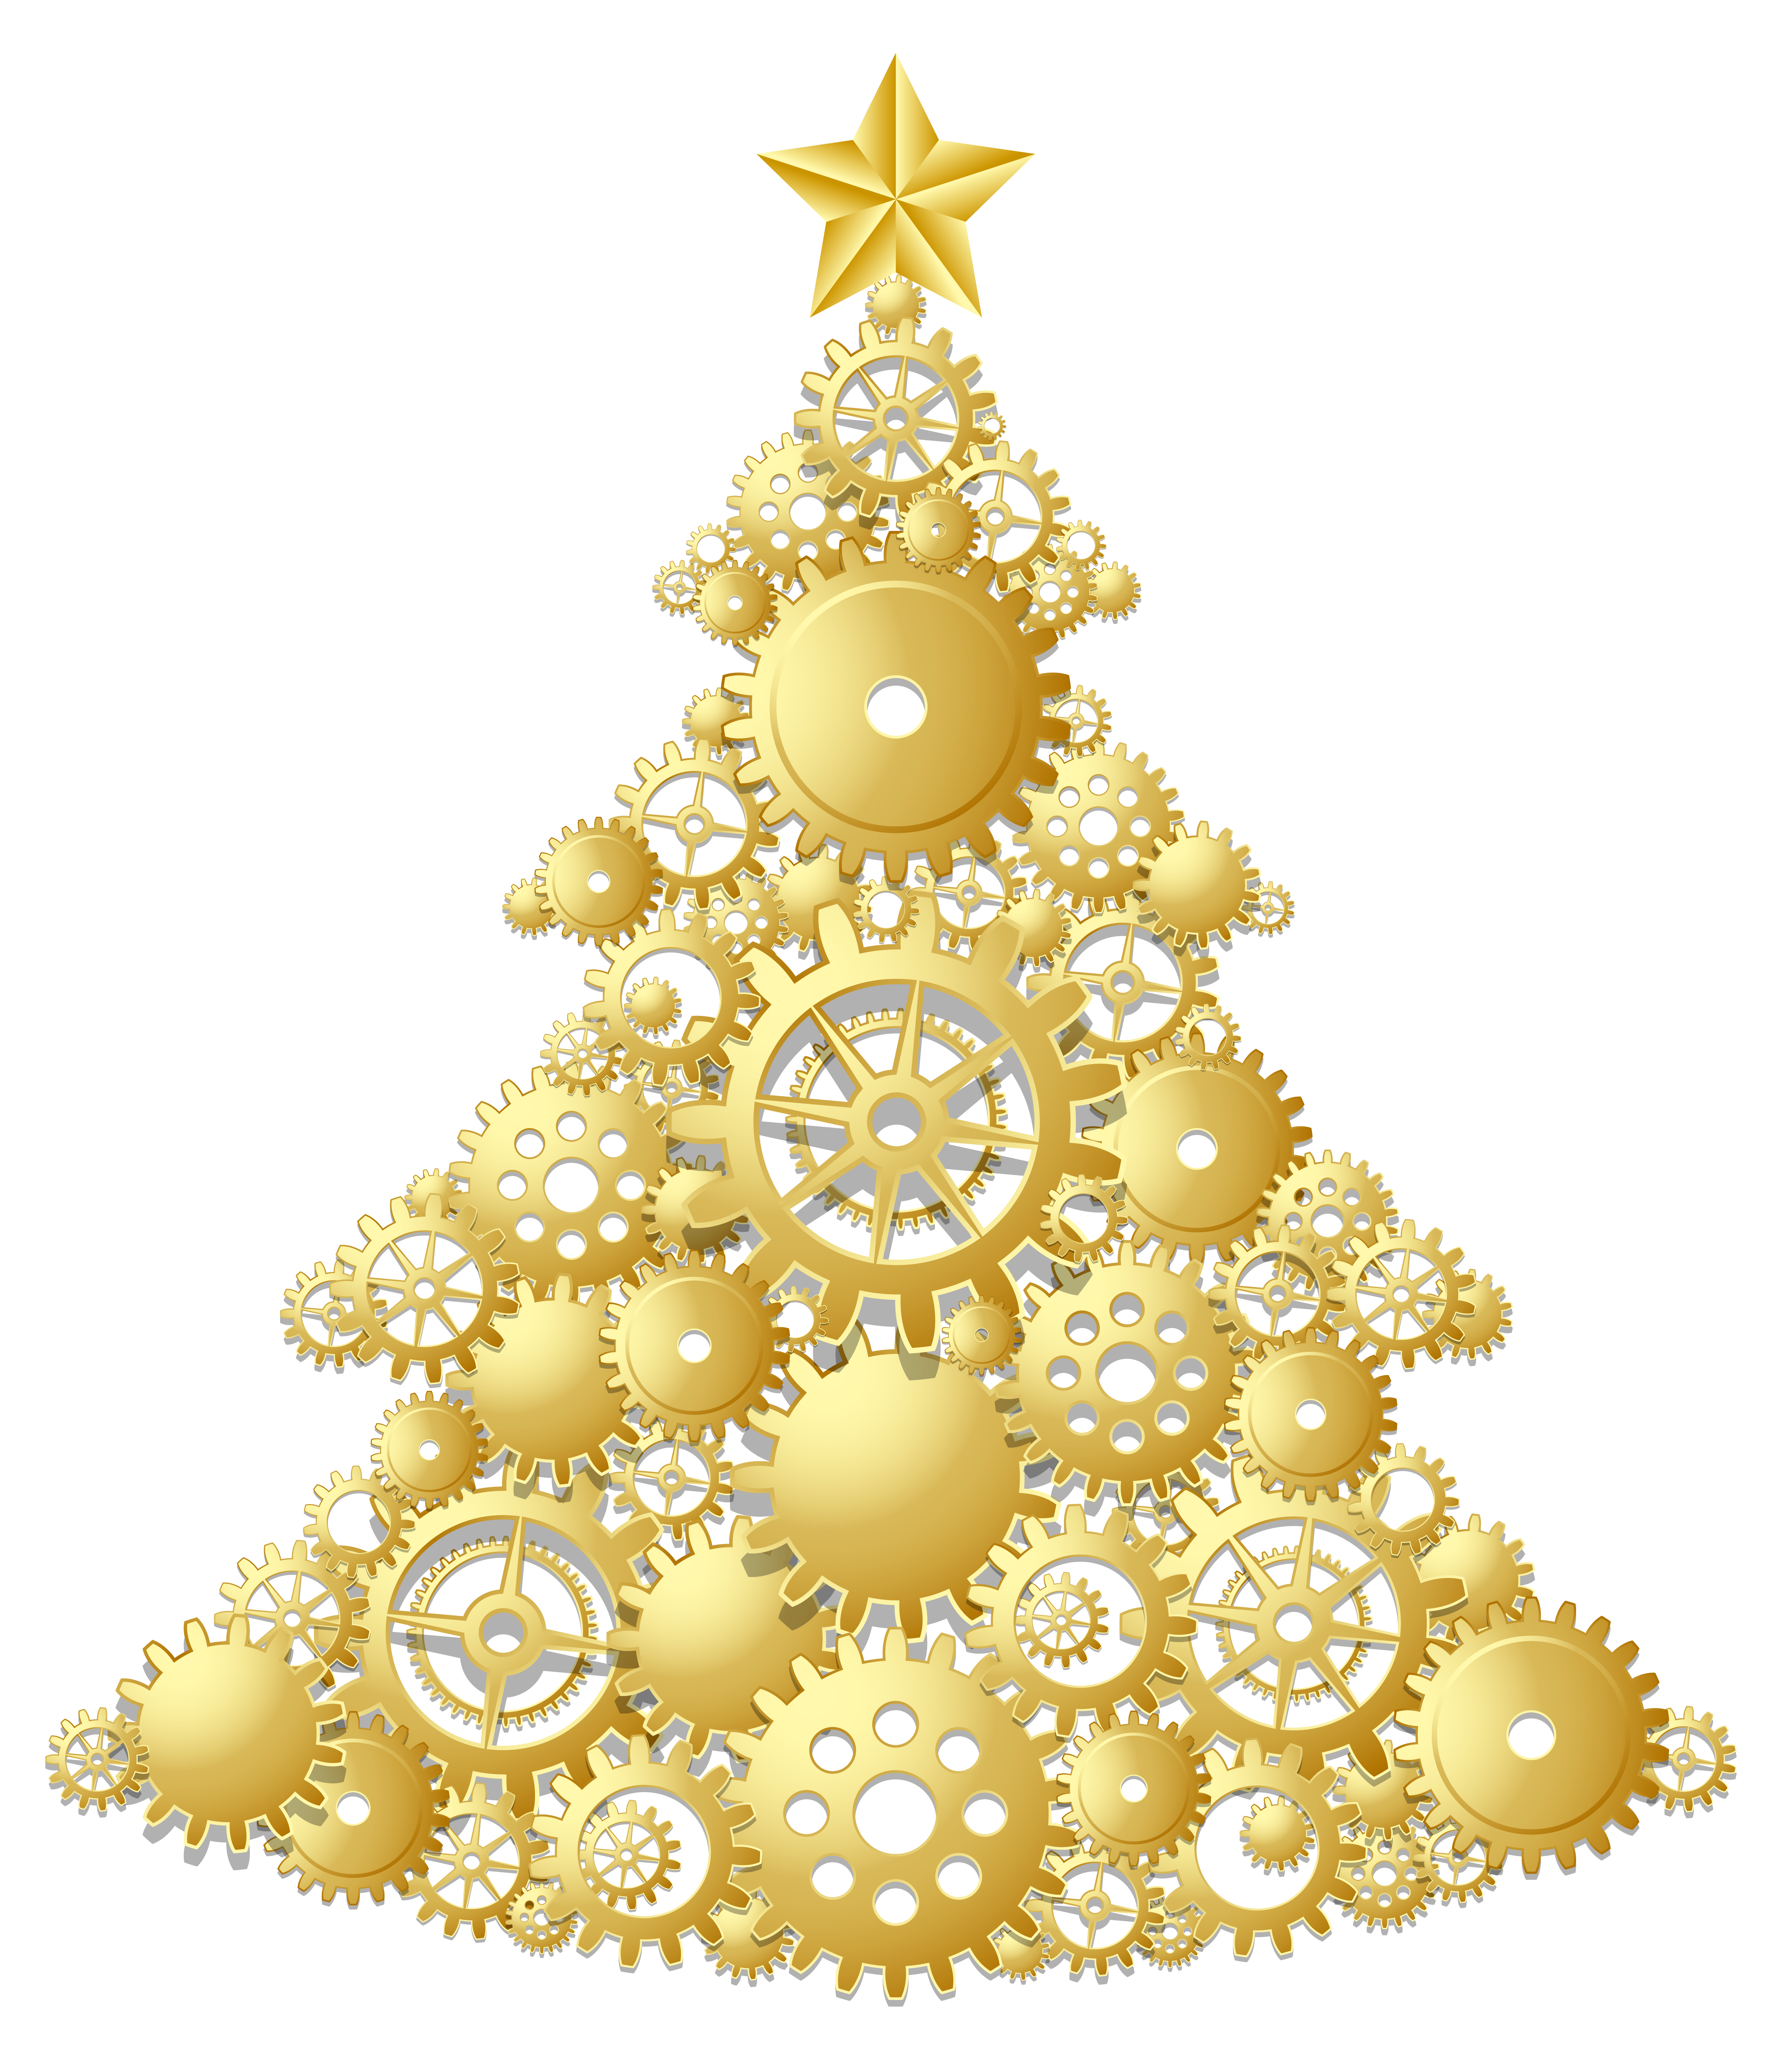 Gold Steampunk Christmas Tree Png Clipart Steampunk Christmas Steampunk Christmas Tree Steampunk Christmas Decorations